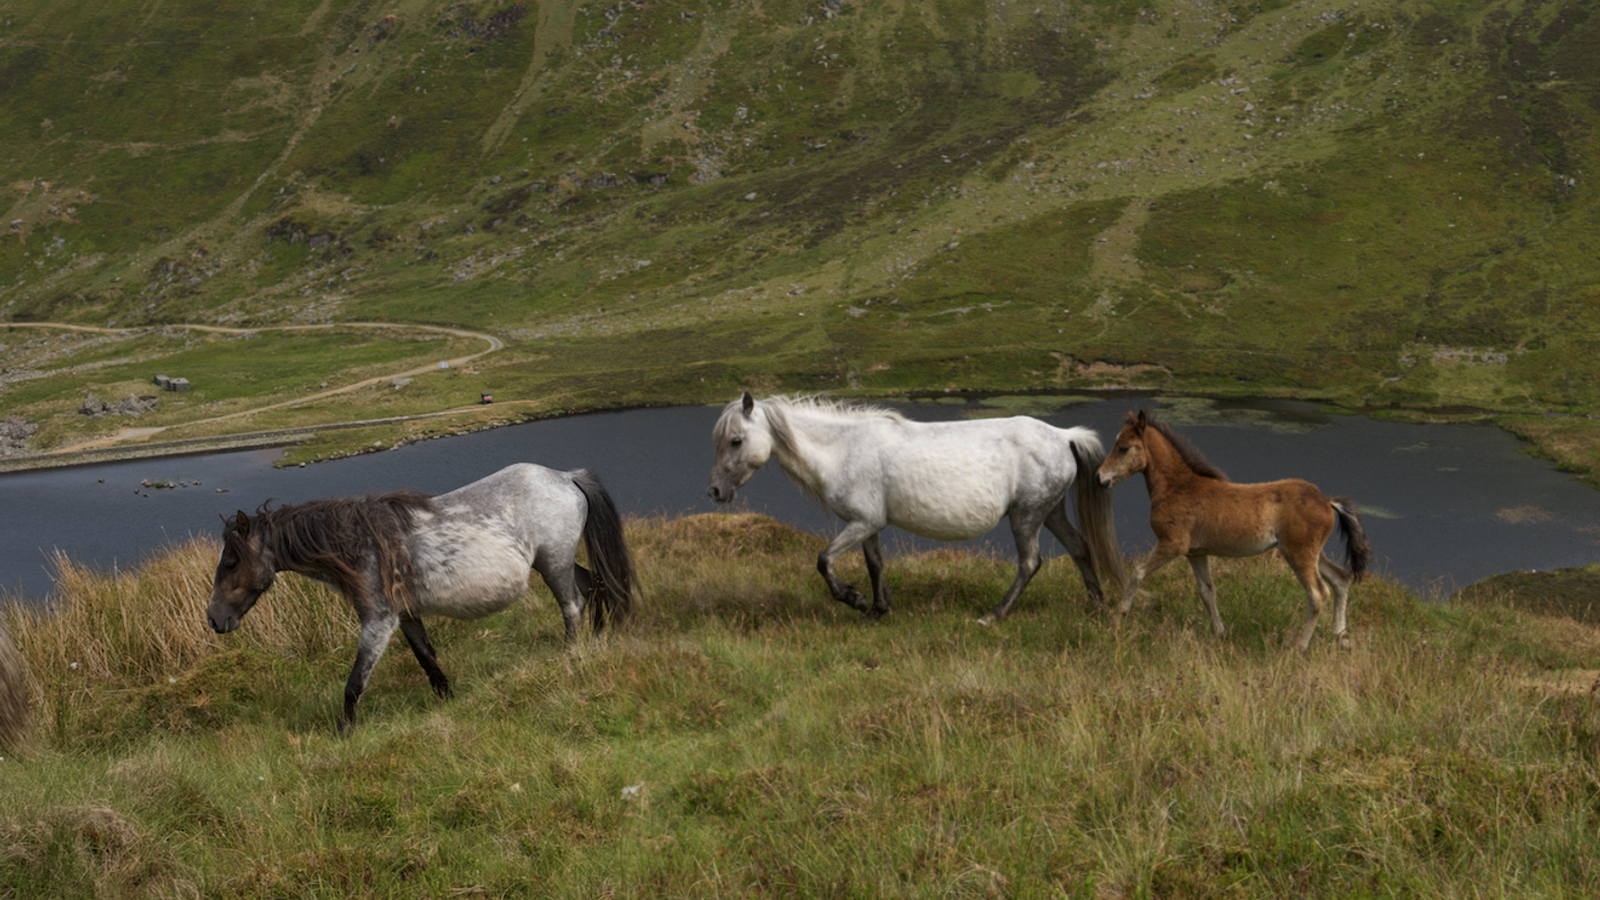 The toughest and most resilient groups of Welsh Carneddau mountain ponies occupy higher altitudes, where winter ...